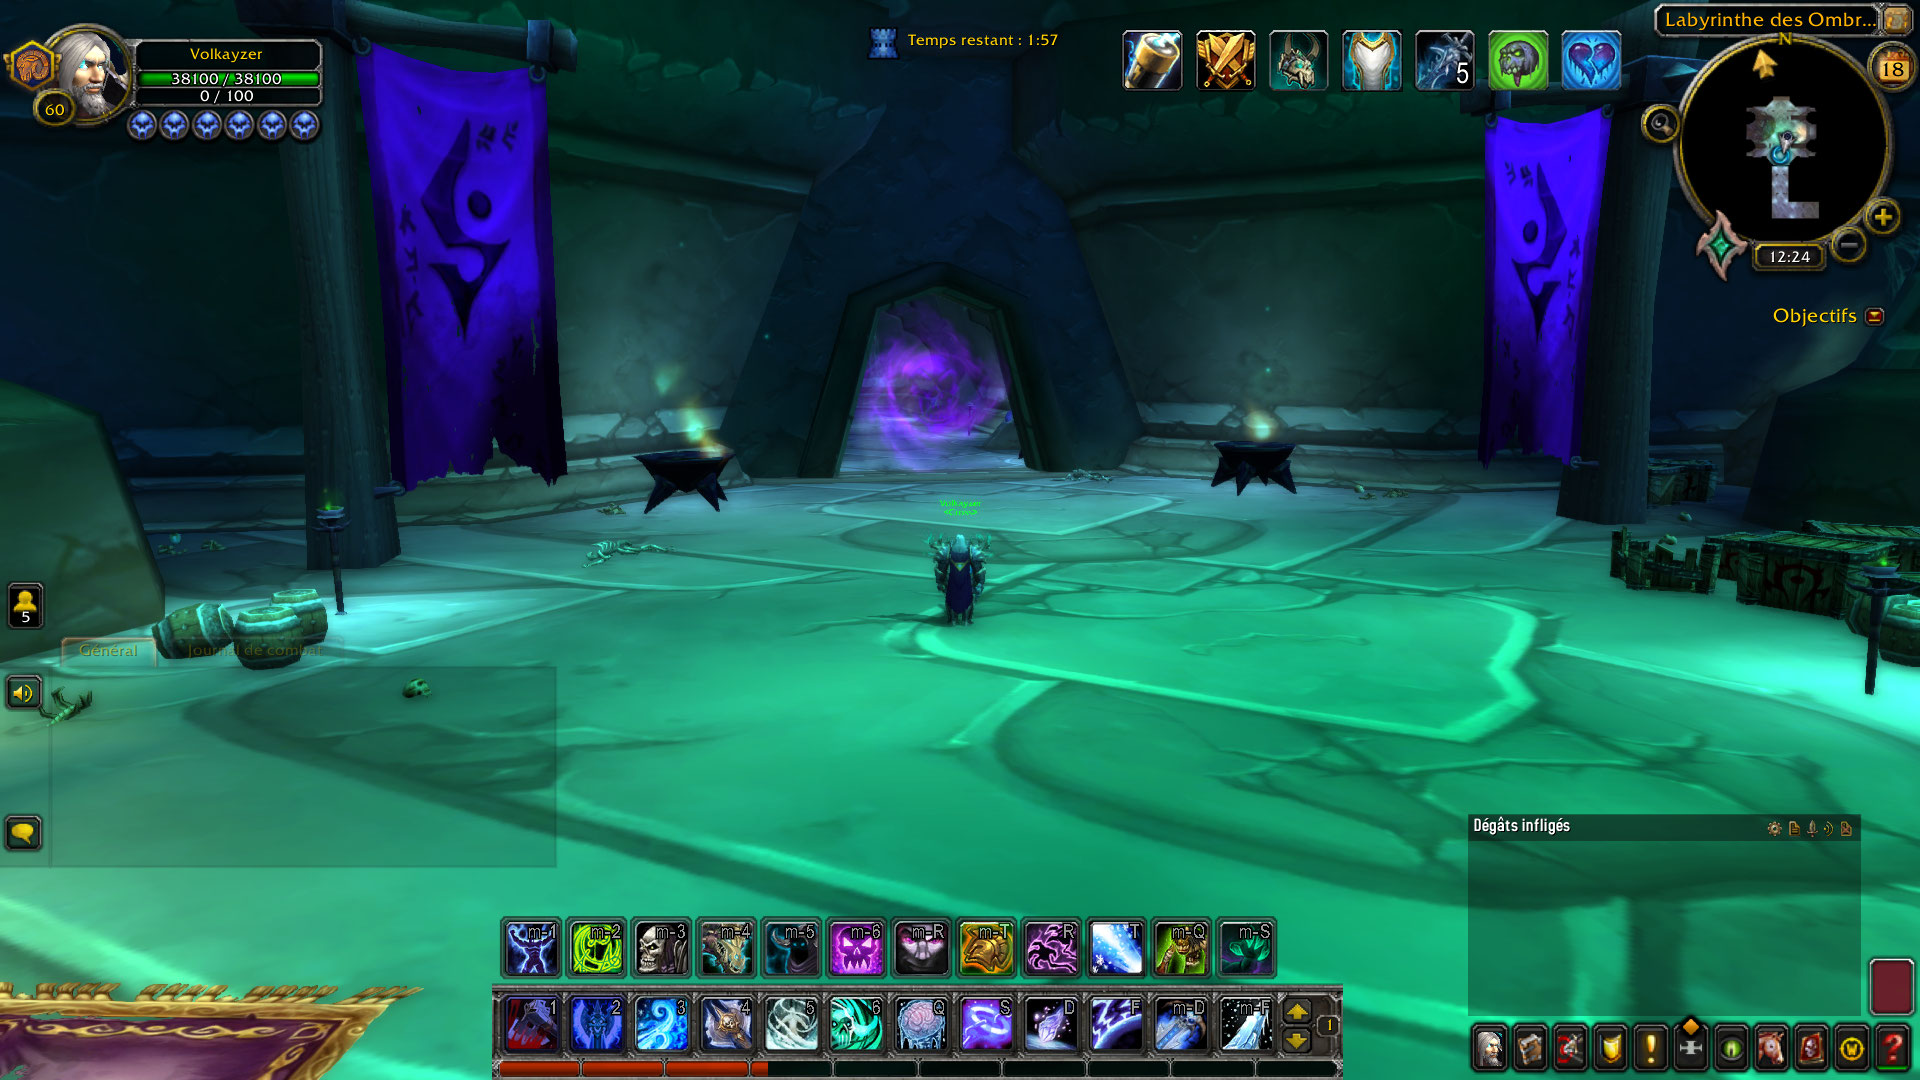 labyrinthe-ombres-entree-donjon-bc-classic-wow